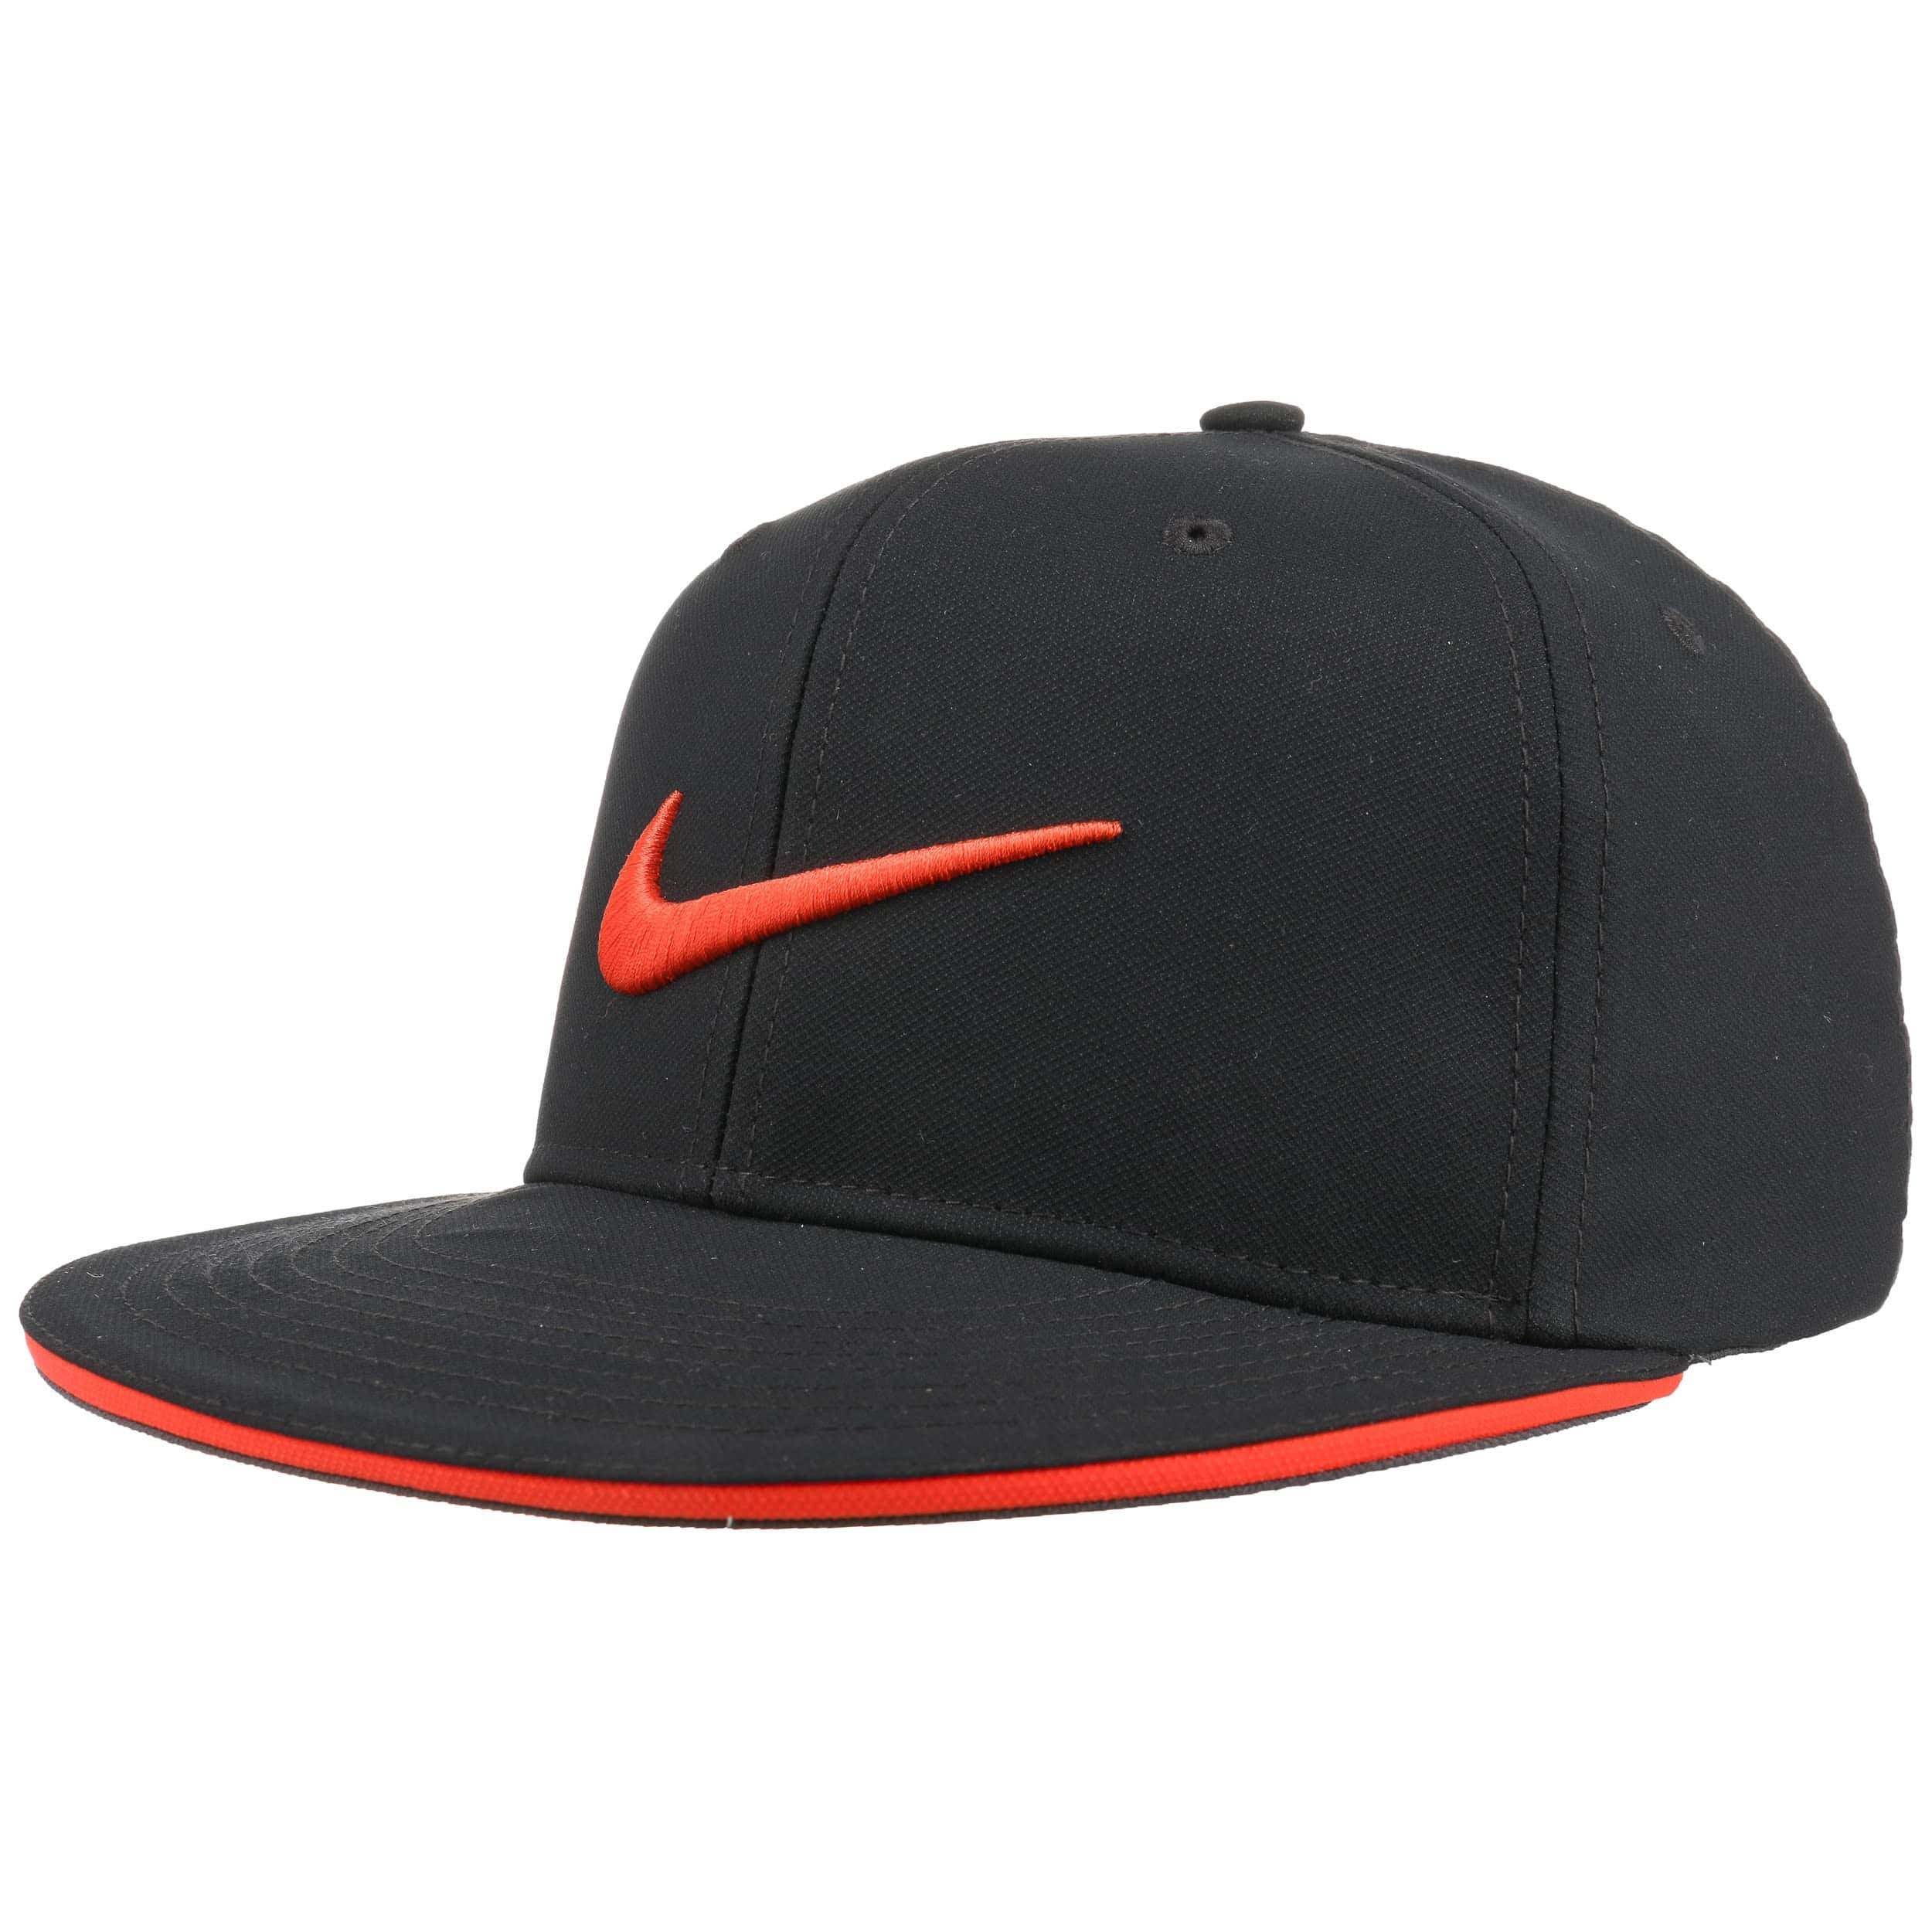 6ce290d73b7fb ... True Statement Clima Uni Cap by Nike - dark grey 6 ...